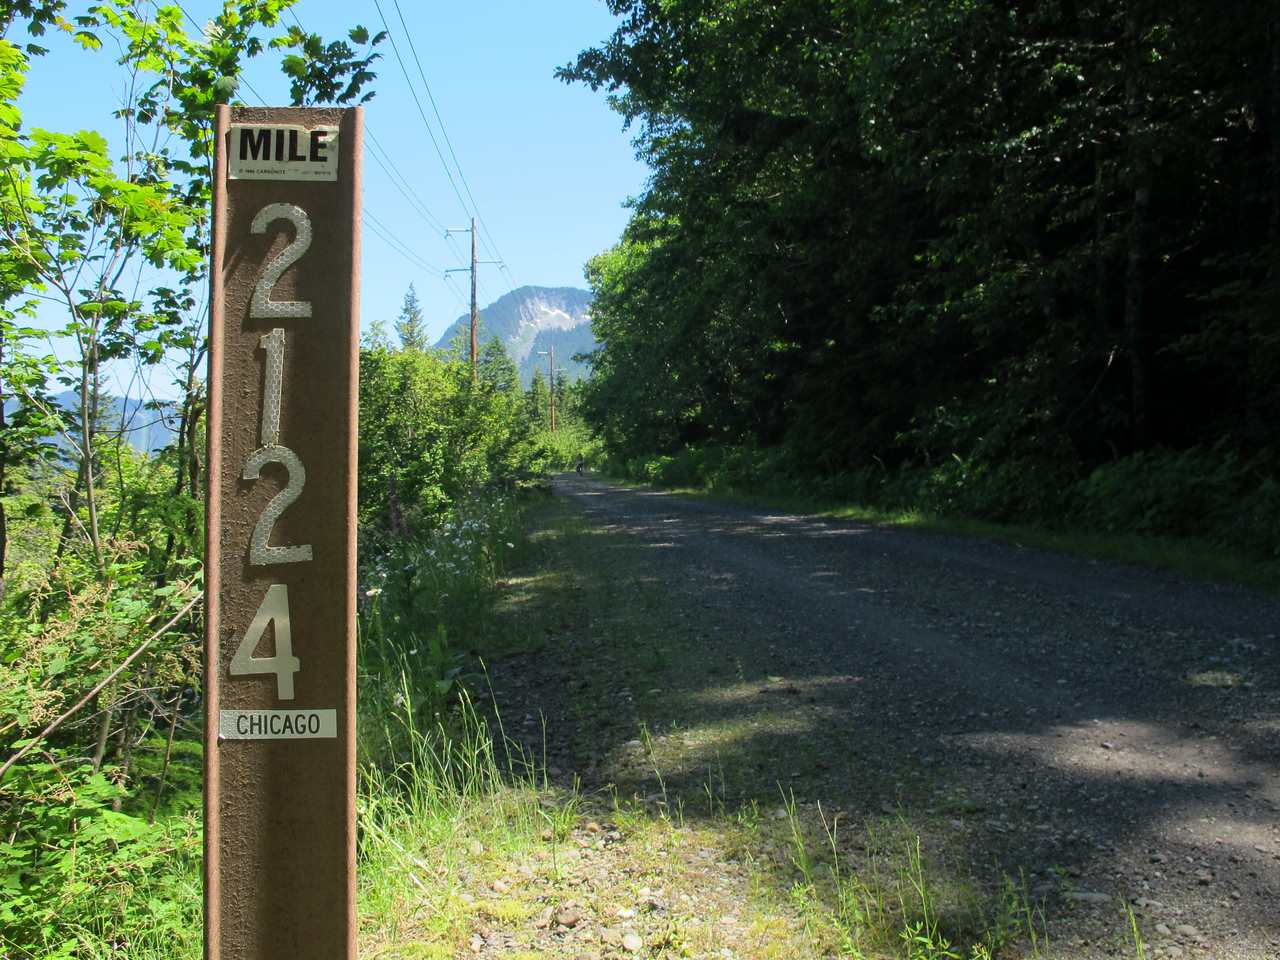 Saturday, July 23, 2011. We ride the Iron Horse Trail. A railroad right-of-way converted to the bicycle trail, it takes you across Snoqualmie Pass to Eastern Washington. This is a route marker that shows the distance to Chicago.